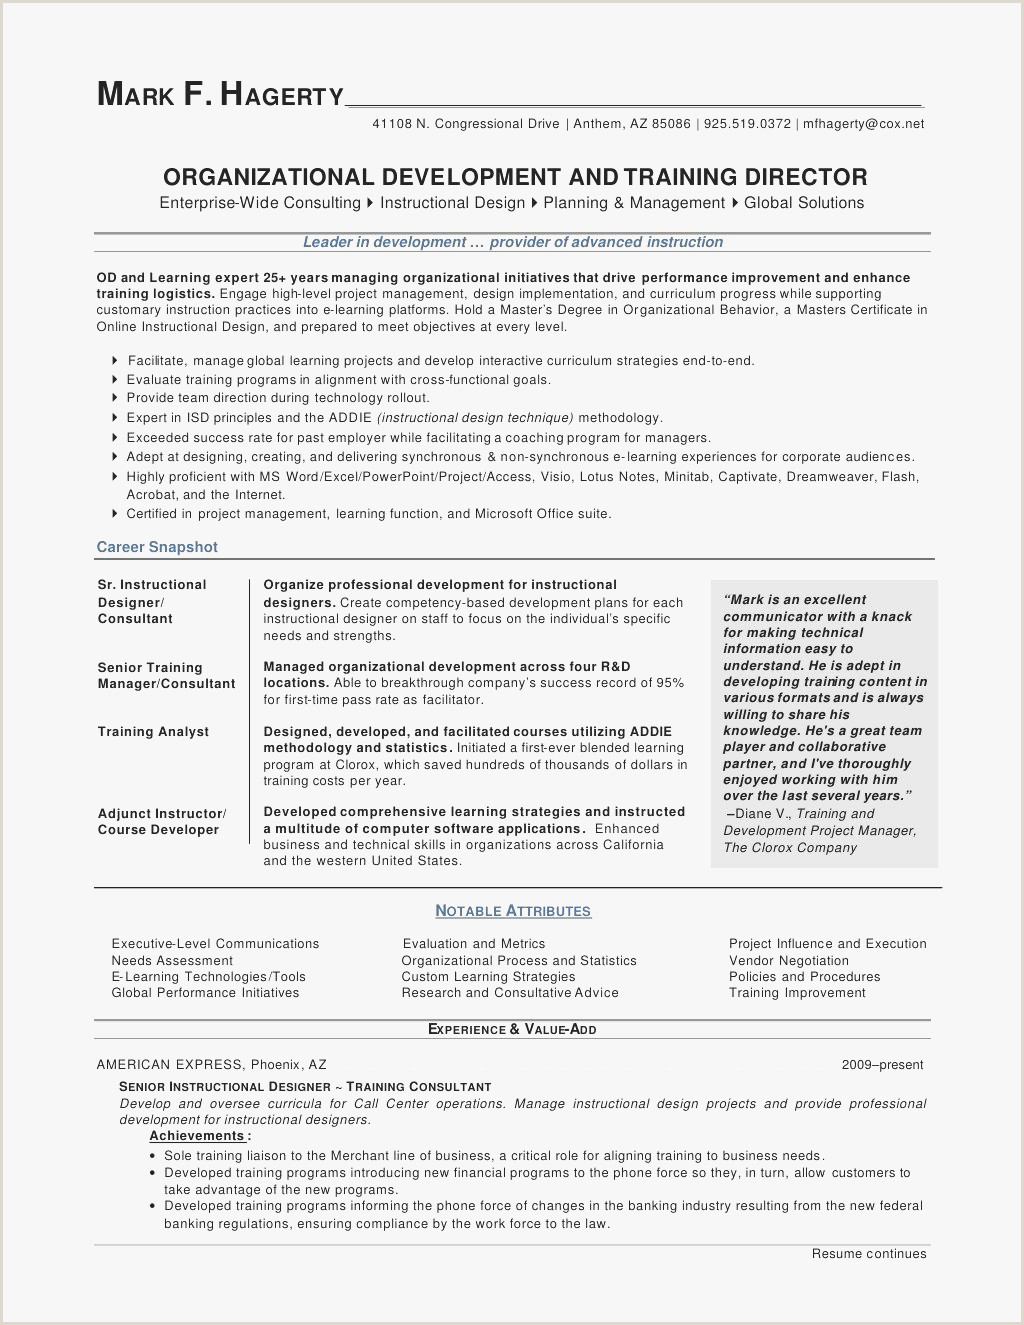 Human Resource Manager Resume Sample Human Resources Manager Resume Professional Human